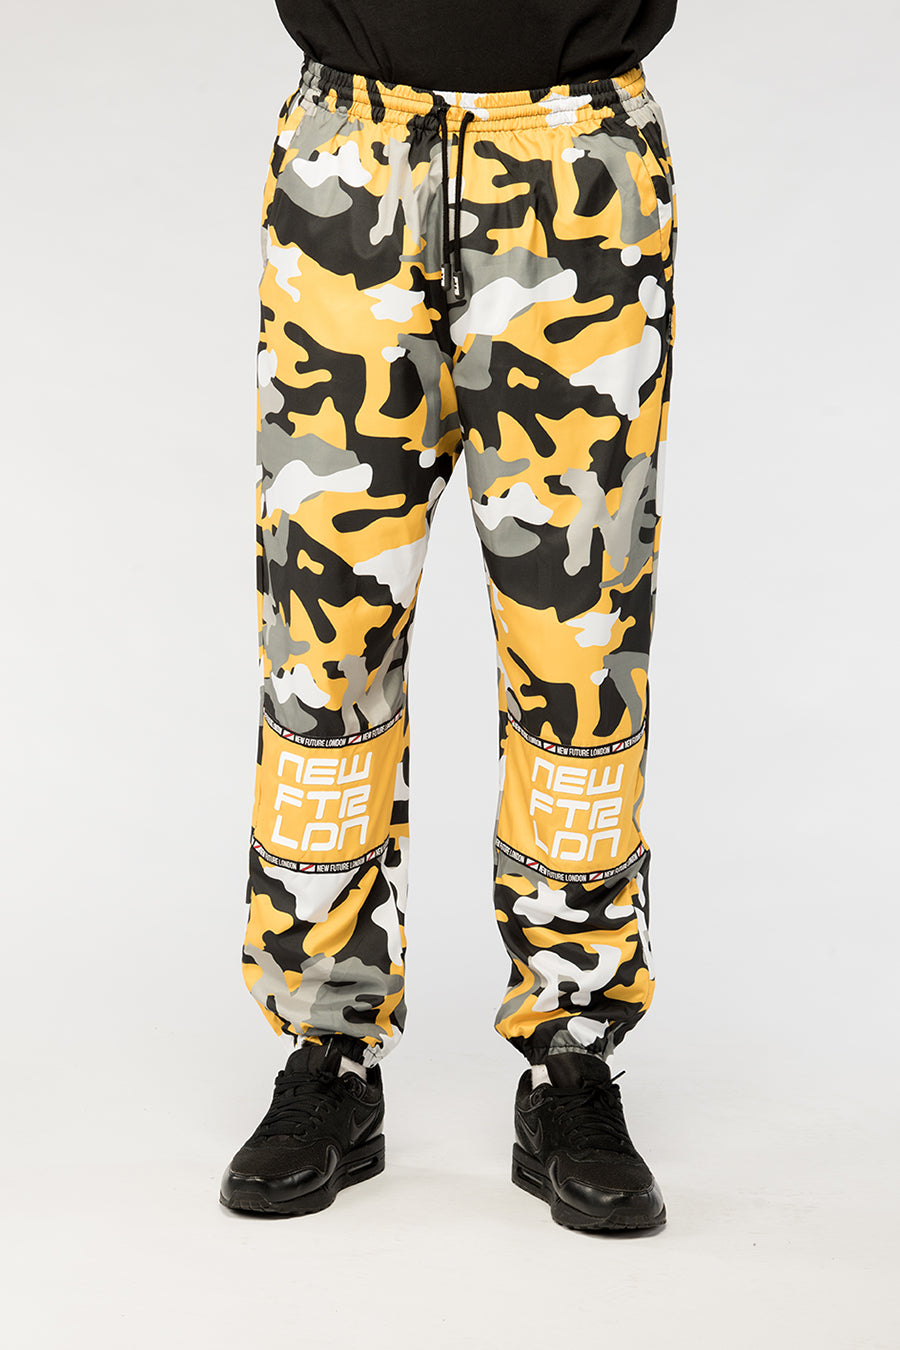 new_future_london_racer_joggers_camo_yellow-1.jpg